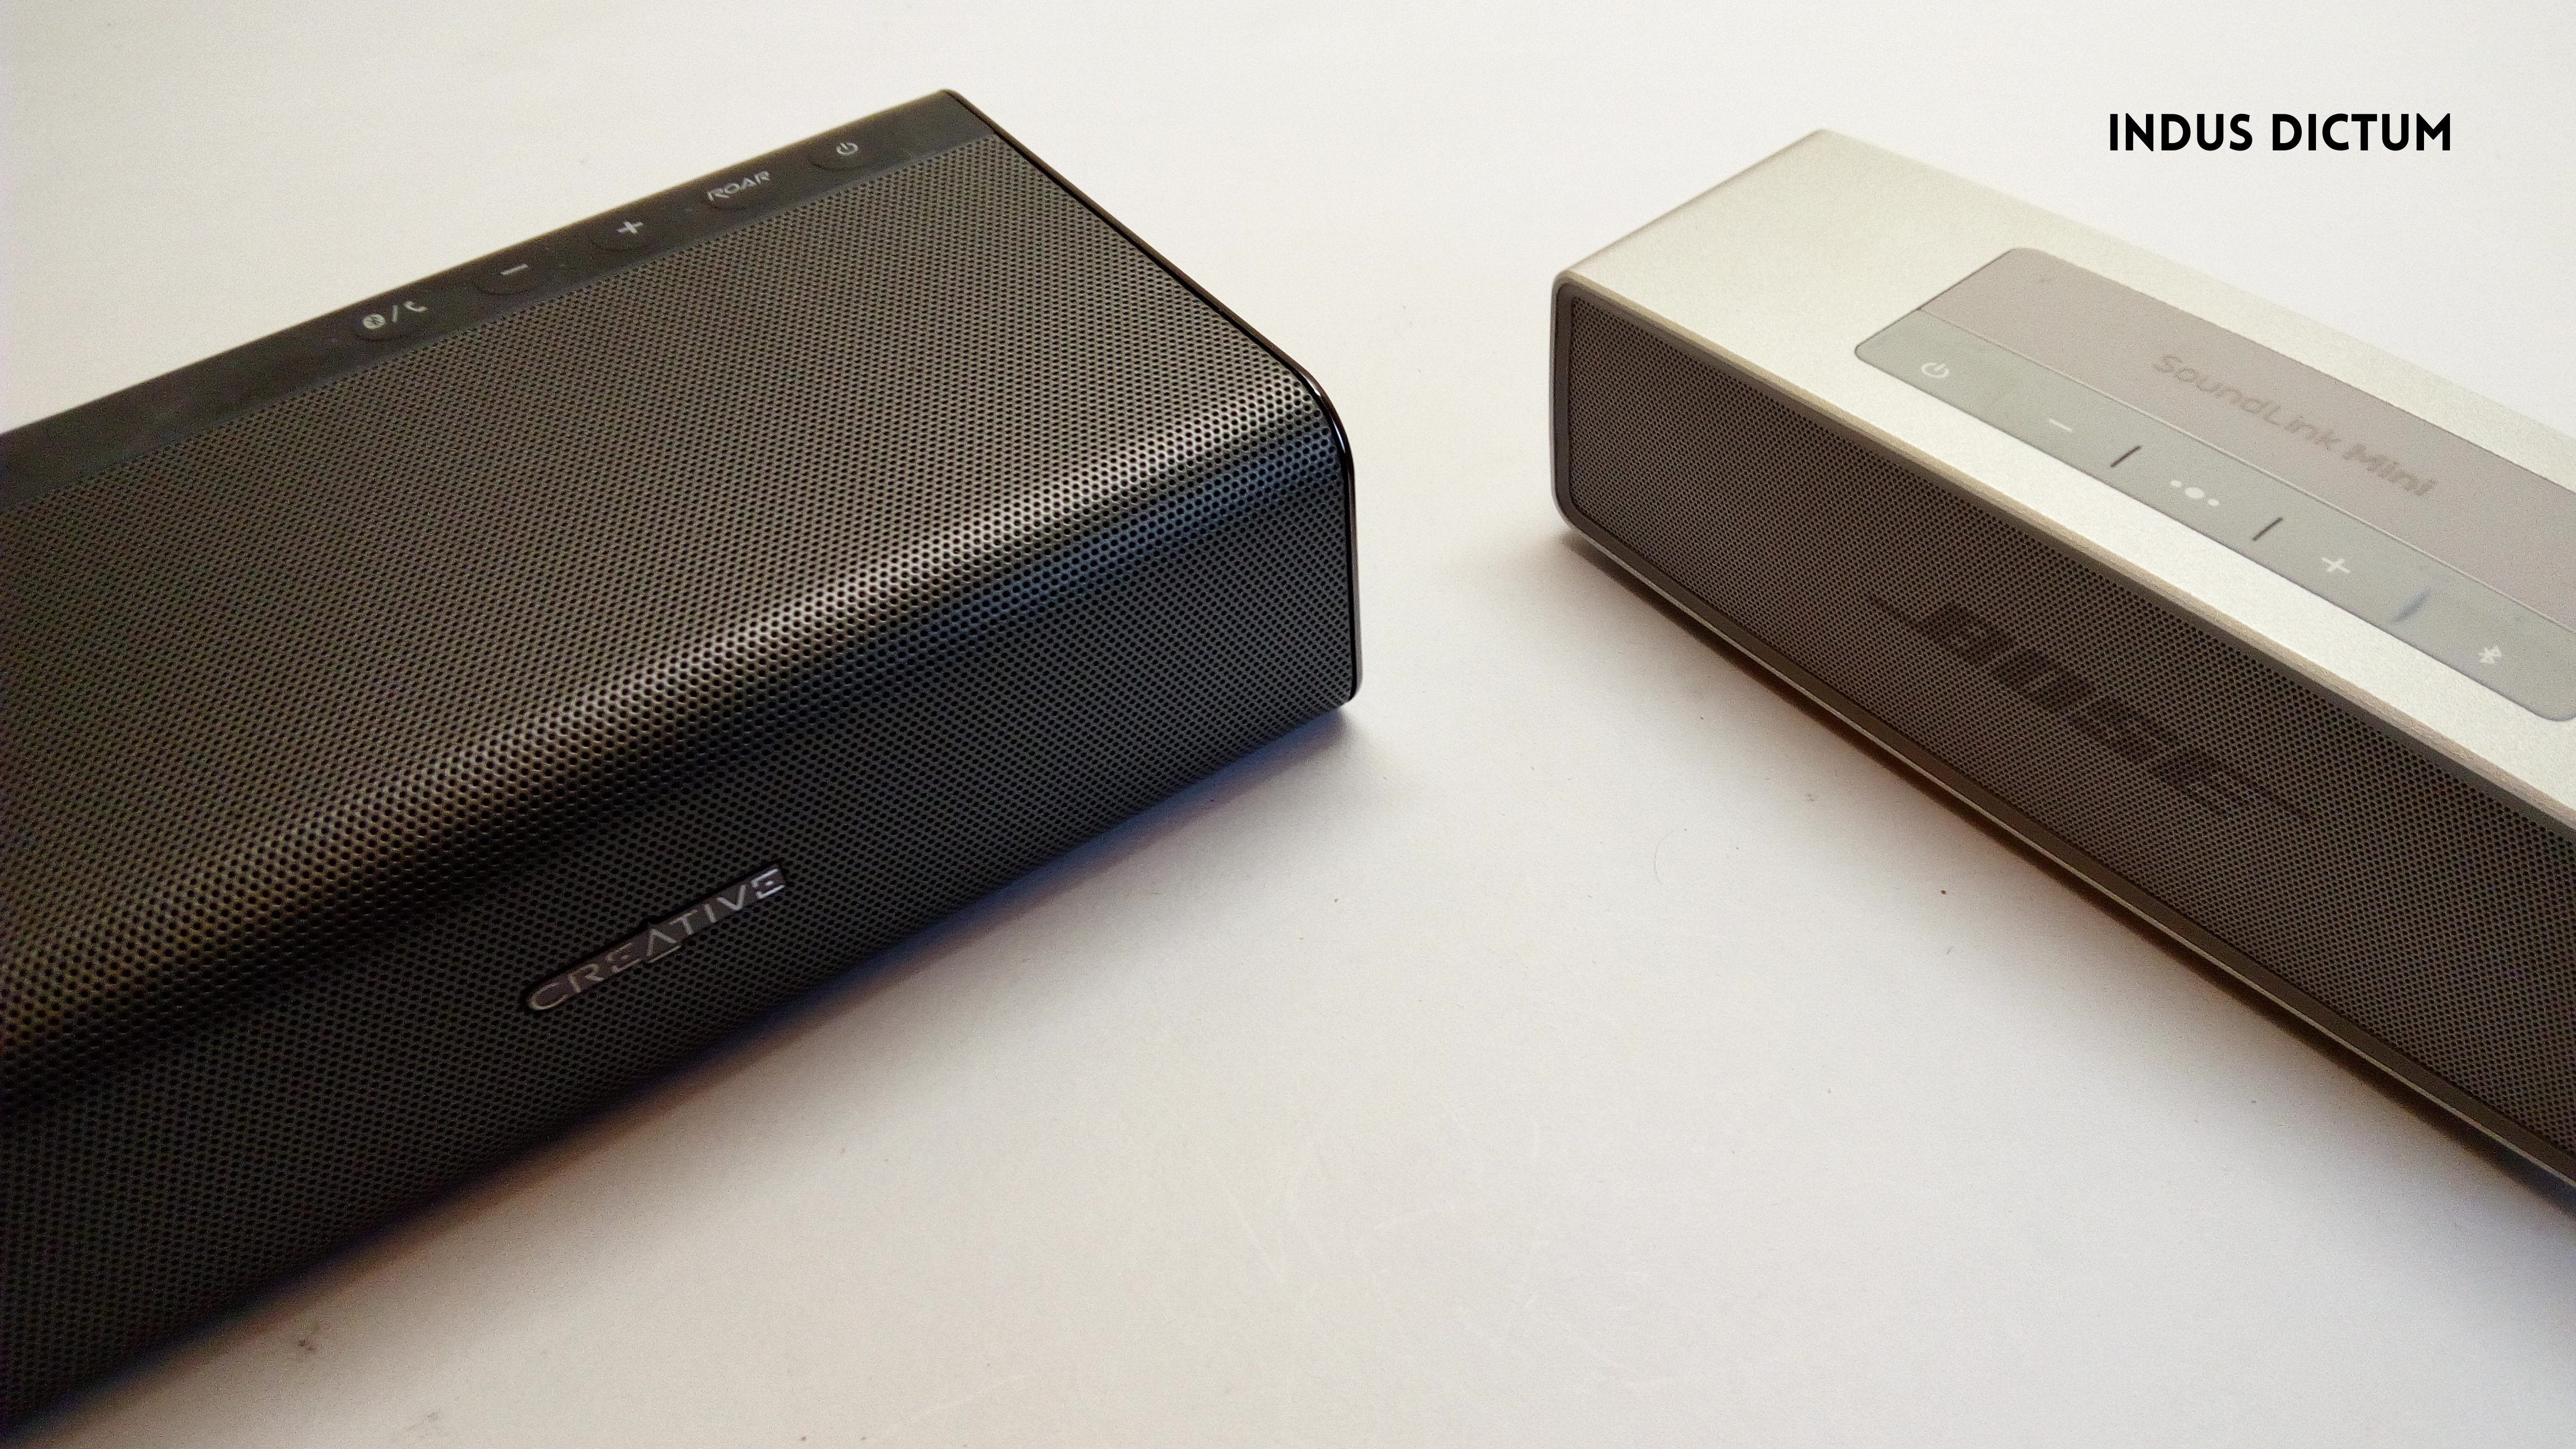 bose soundlink mini and creative roar soundblaster watermark